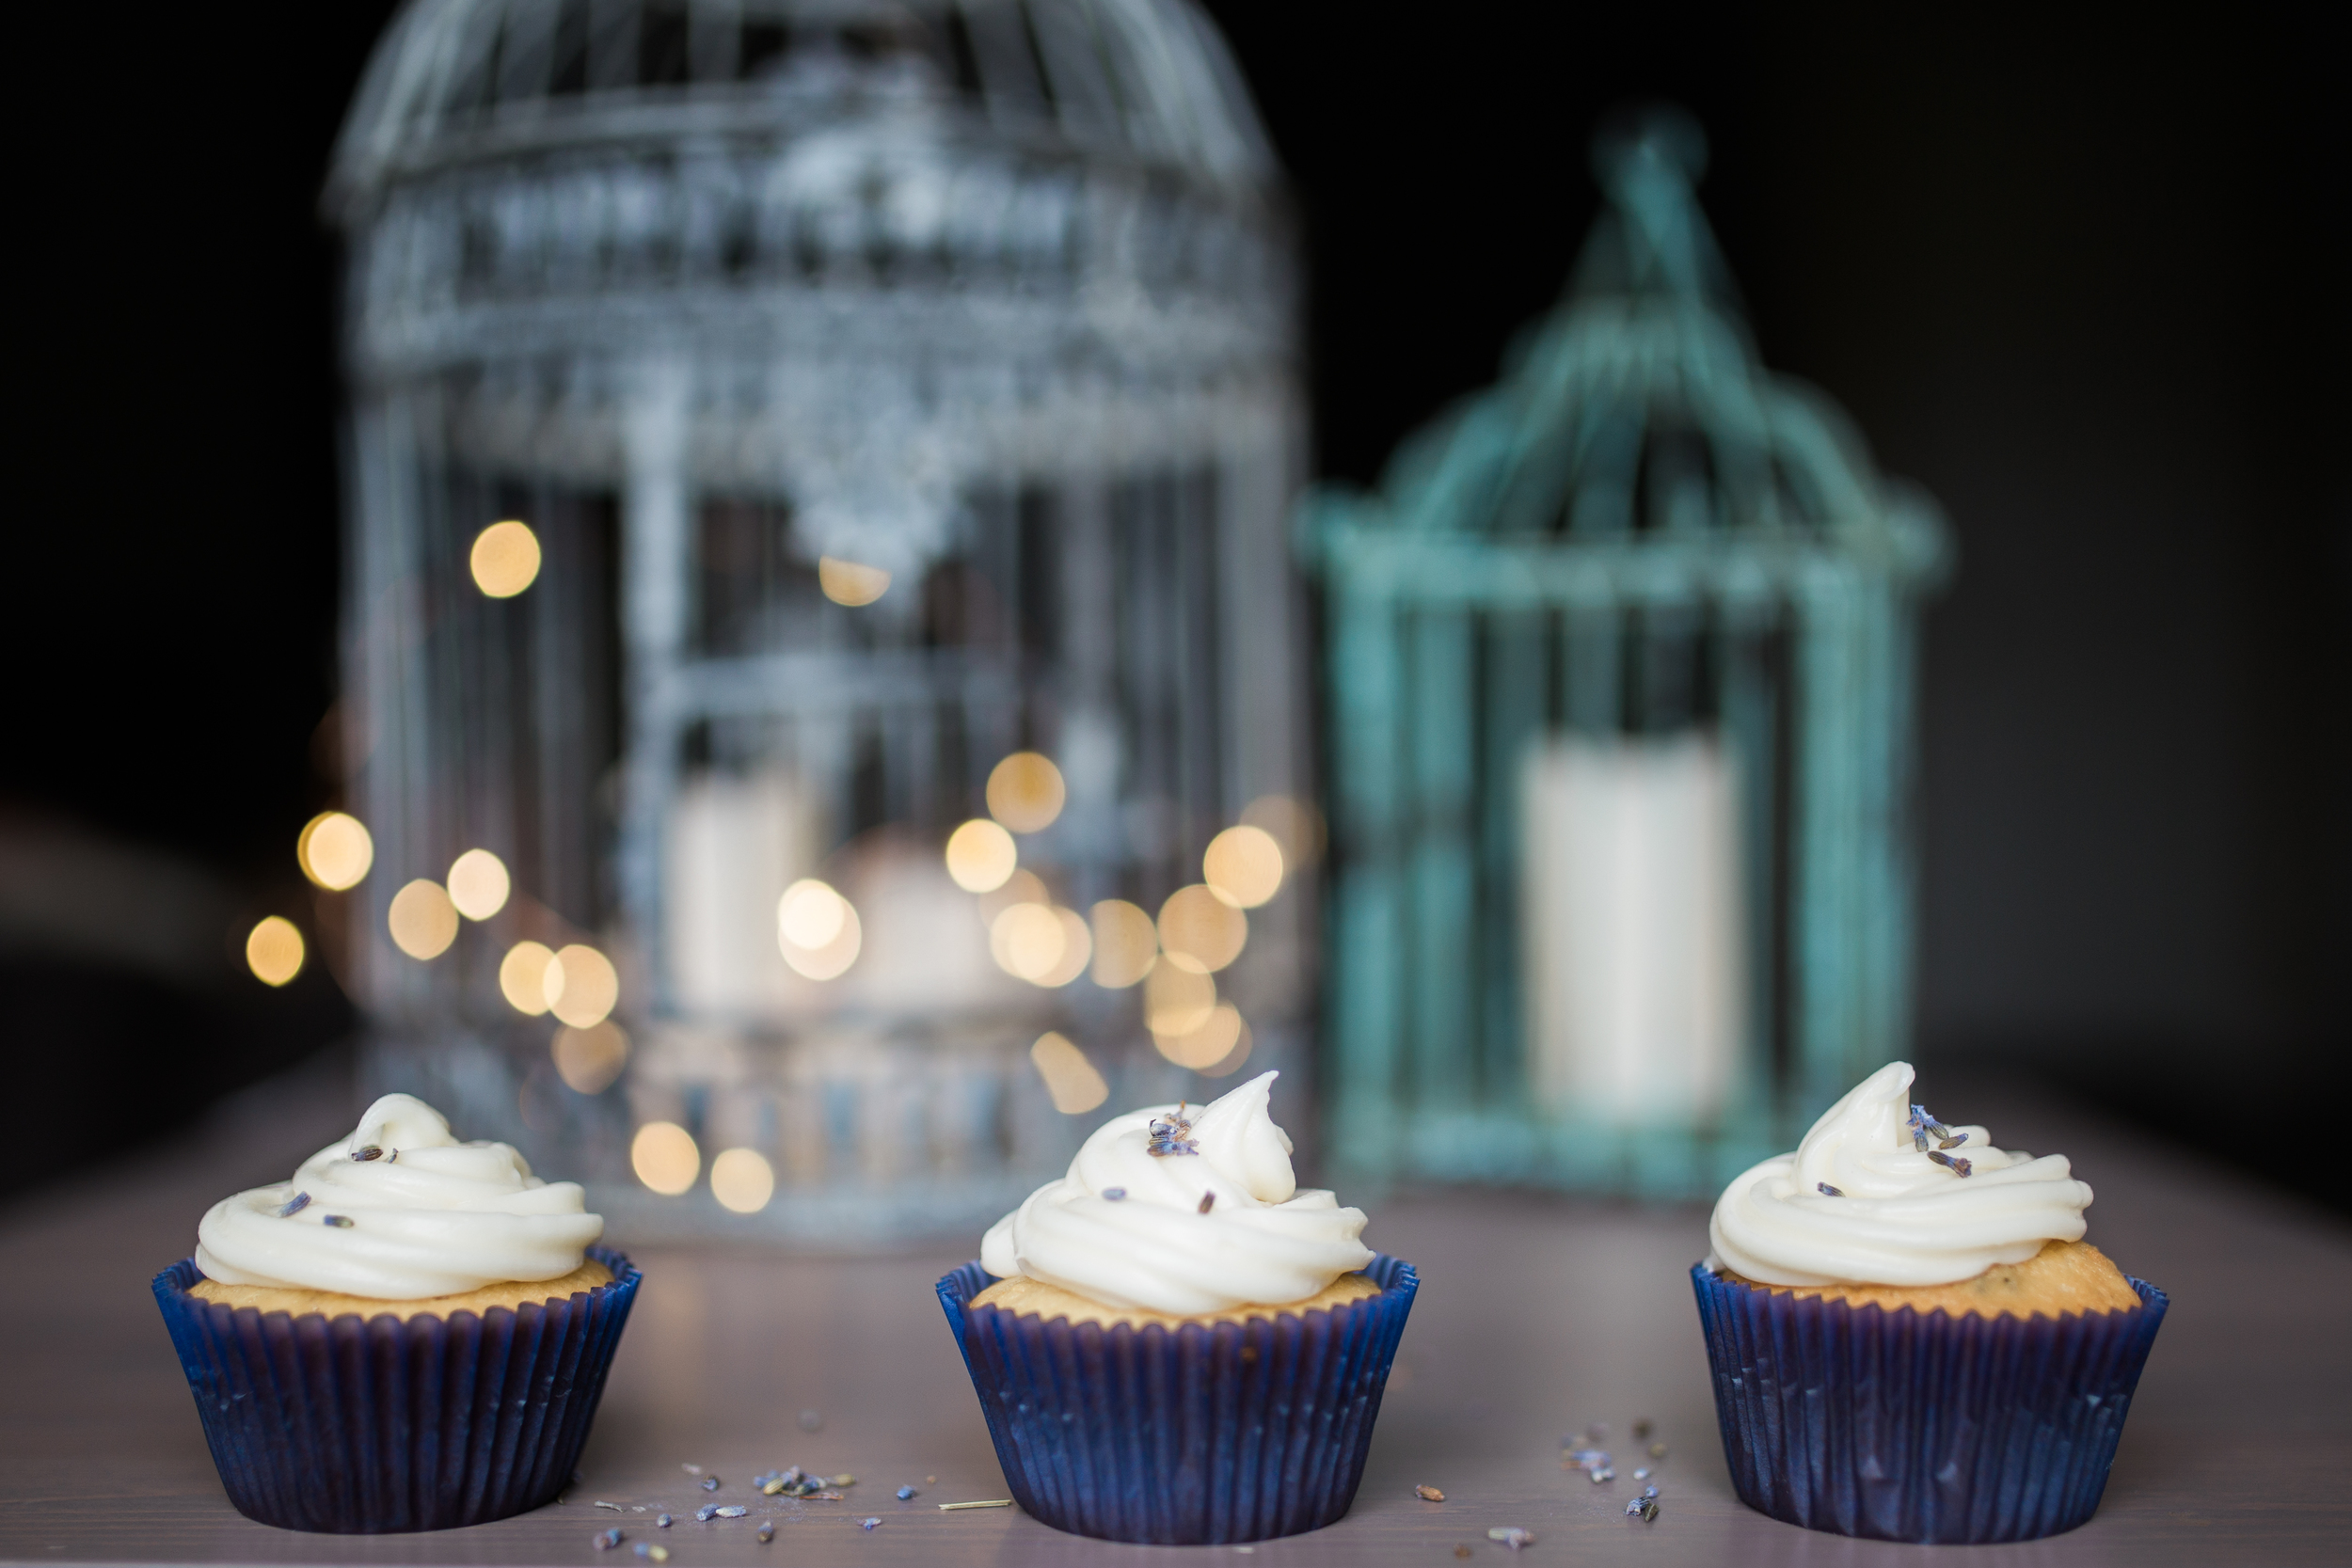 Cupcakes + Birdcages